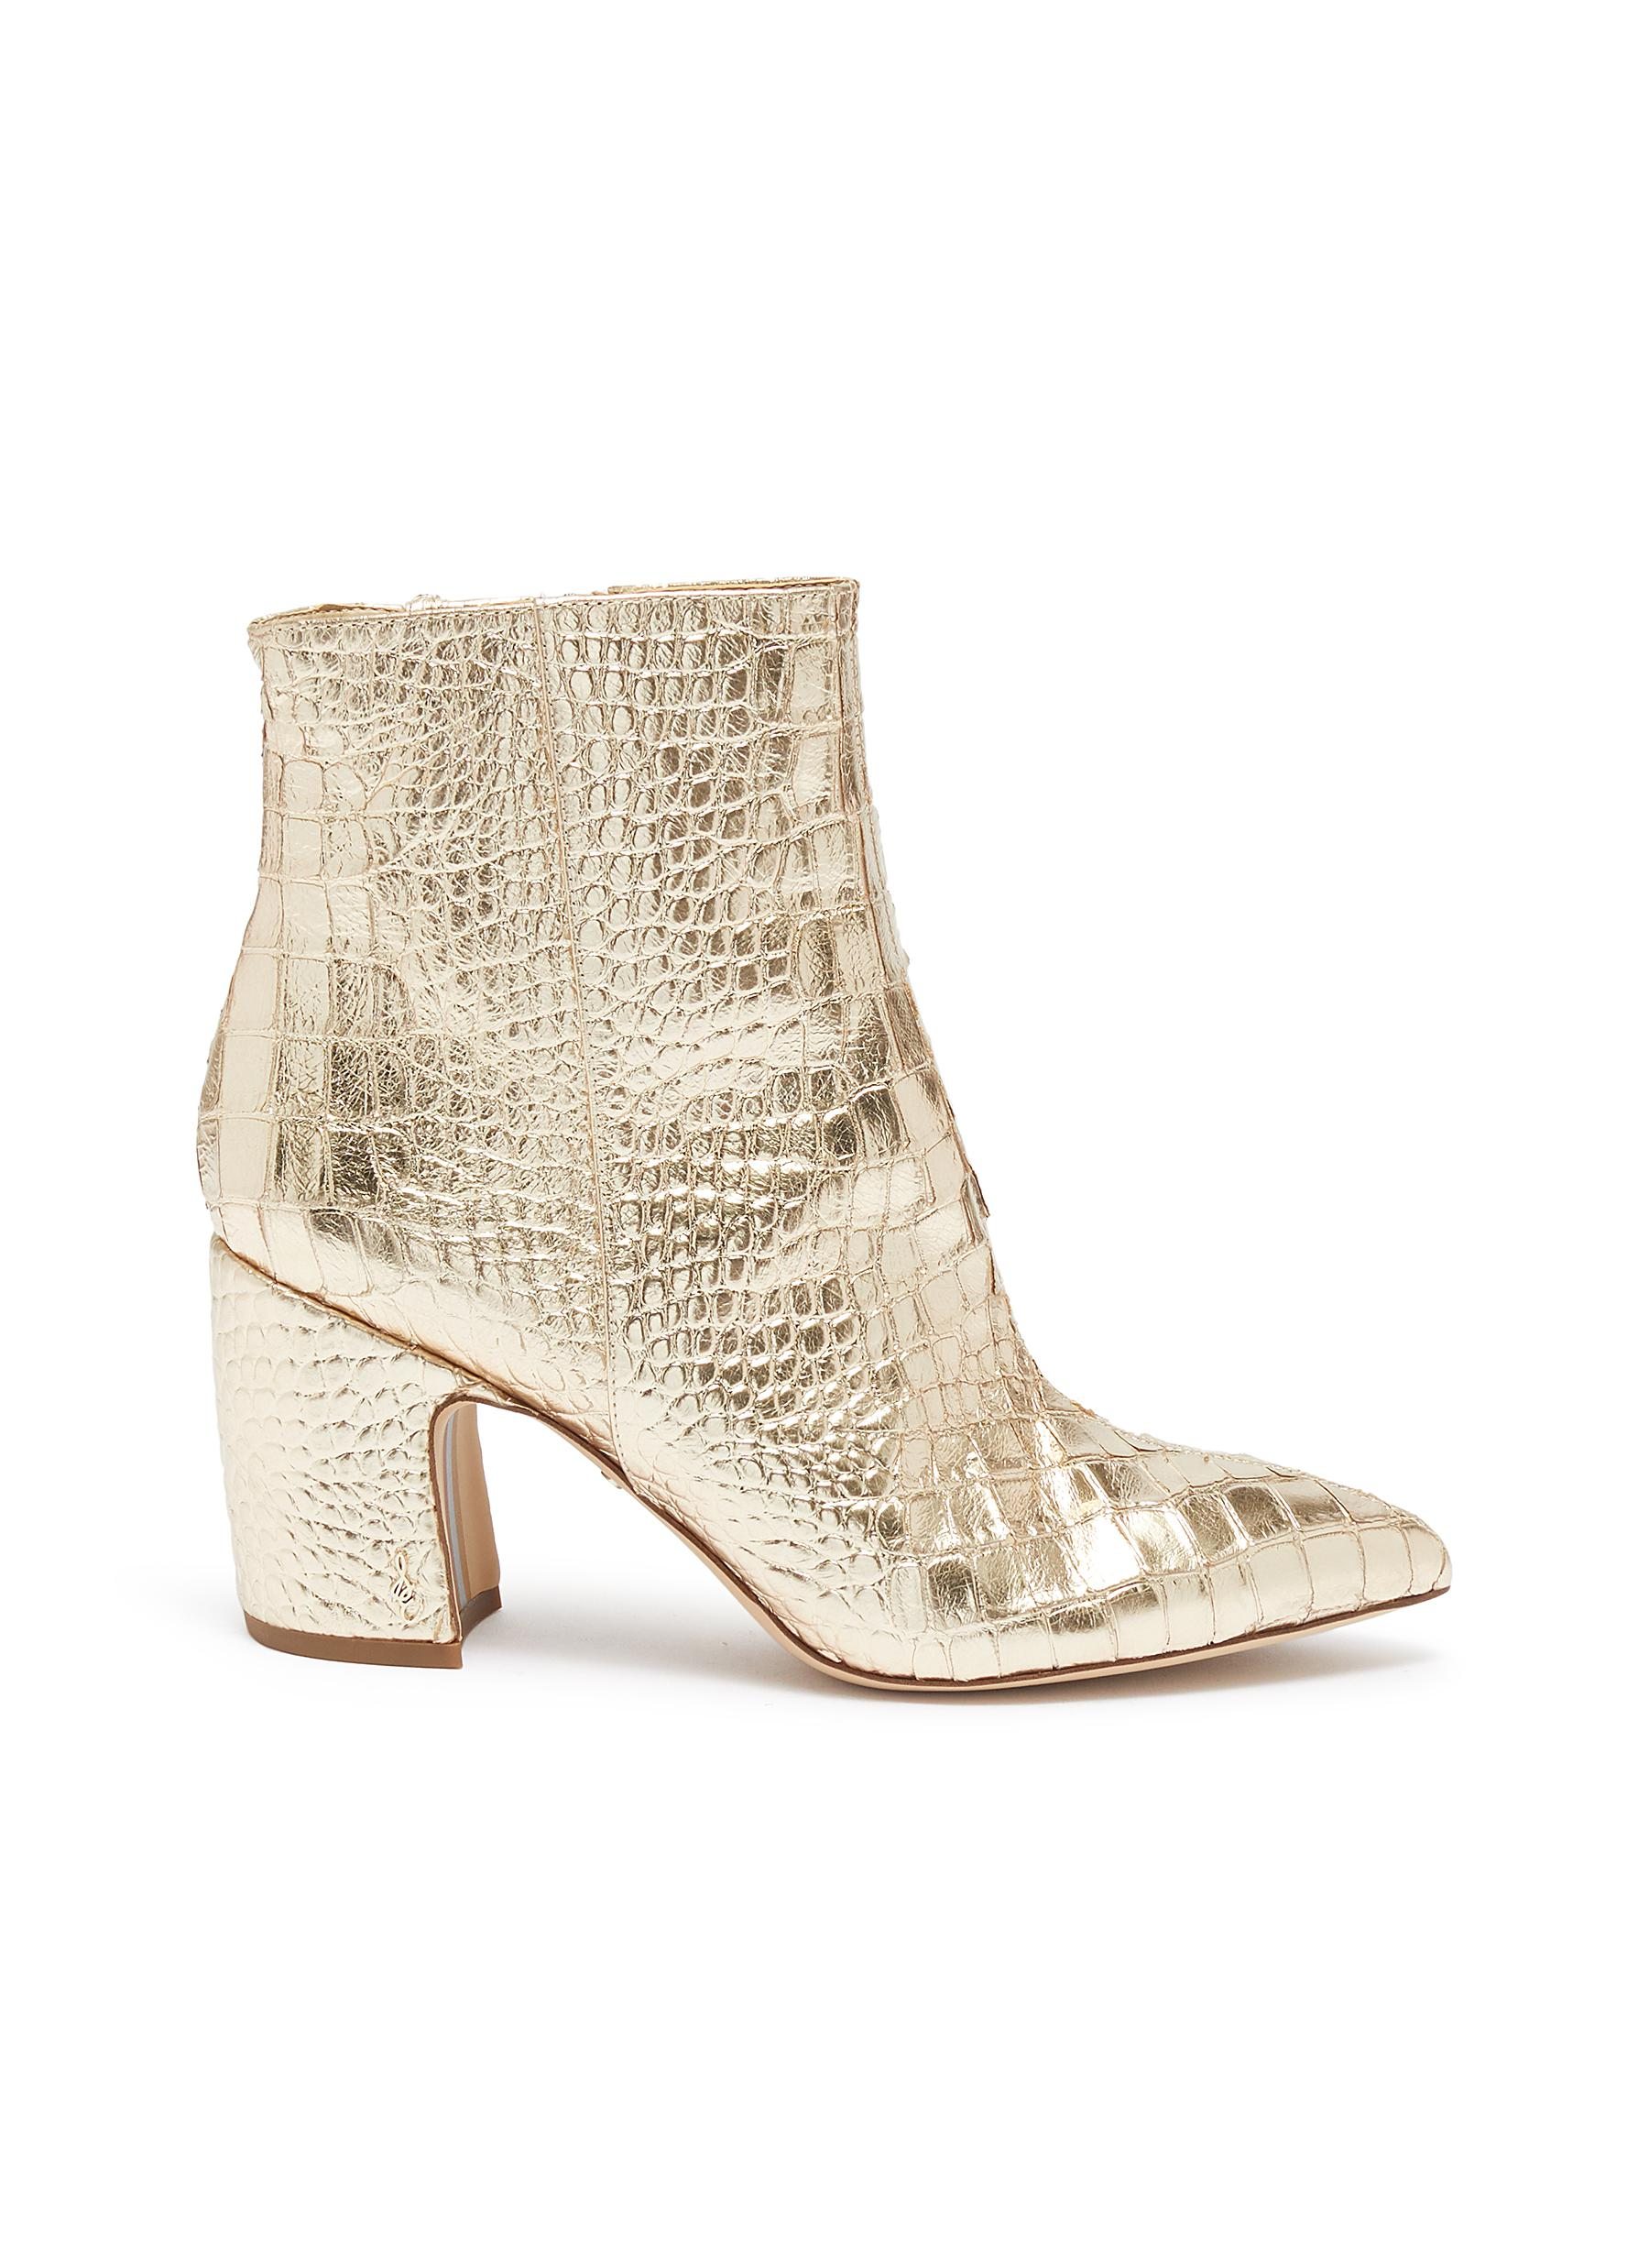 Hilty croc embossed mirror leather ankle boots by Sam Edelman